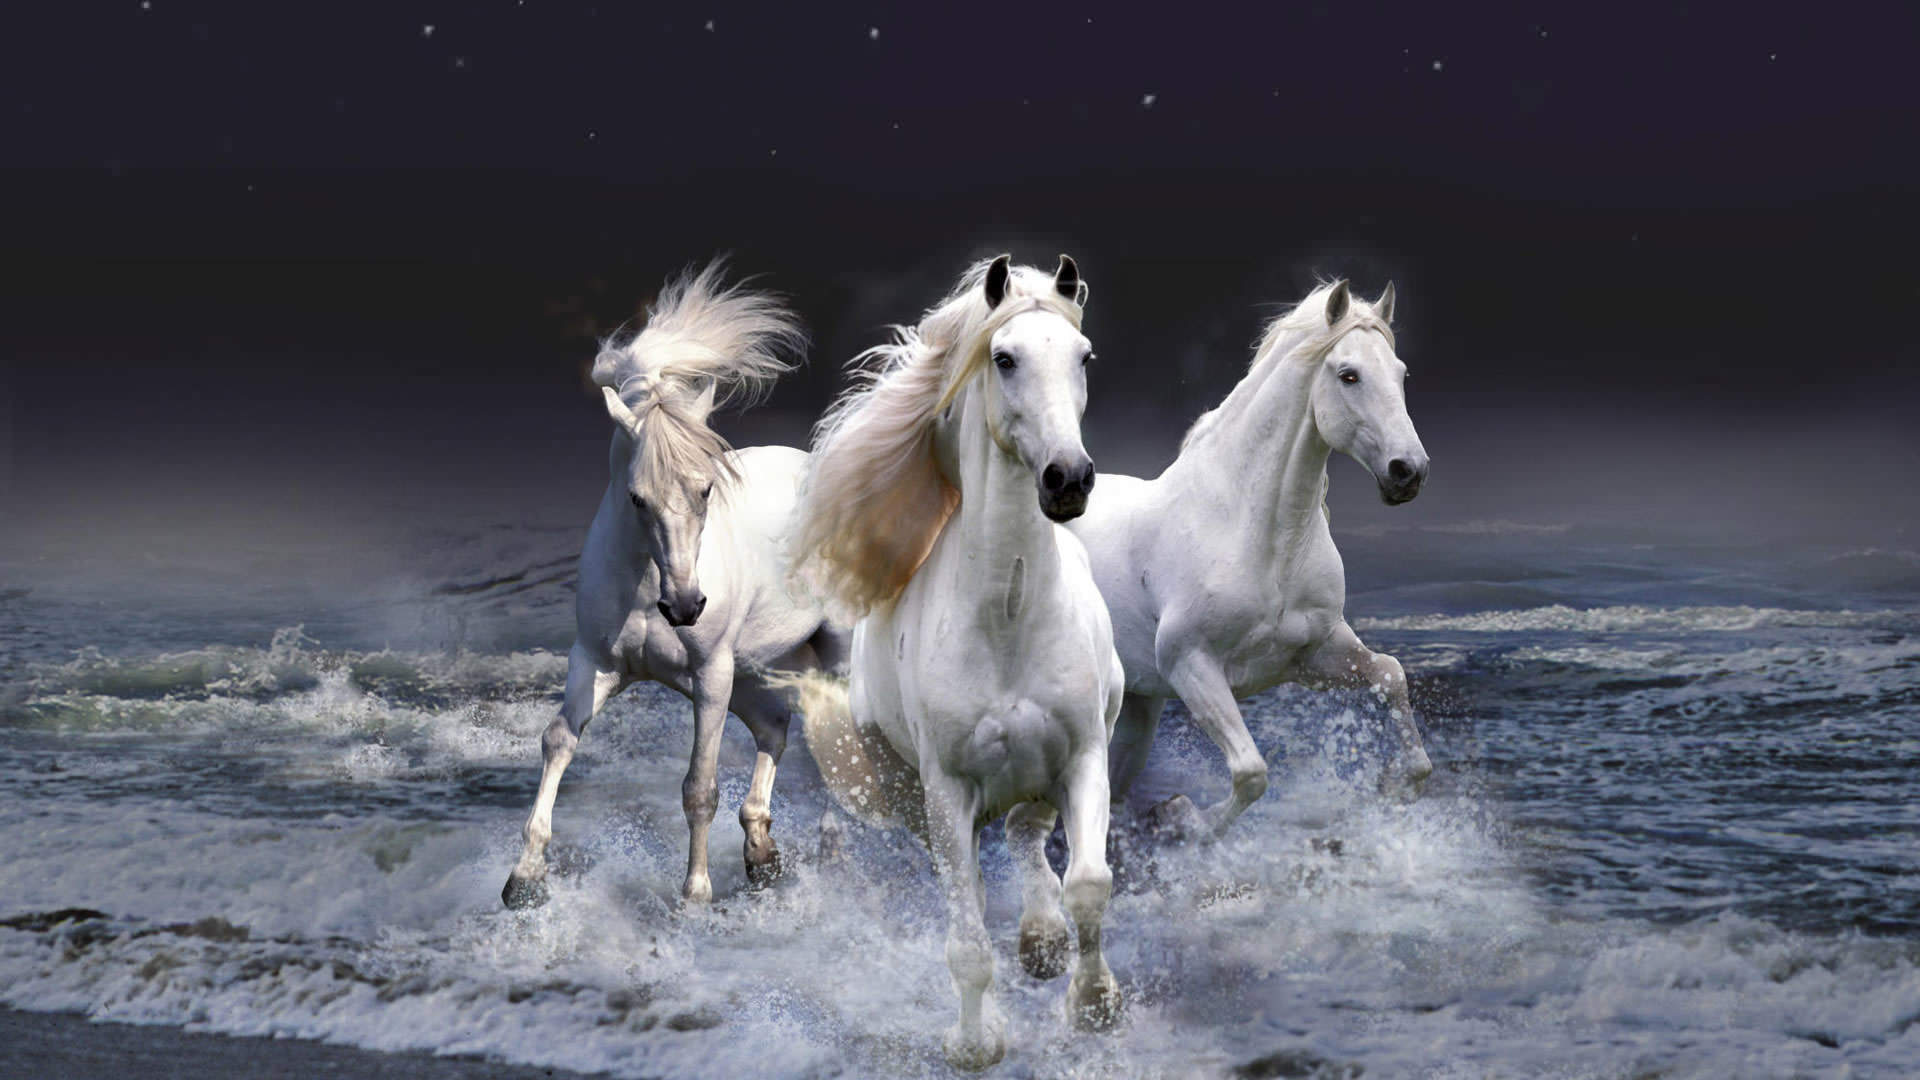 White running horses - photo#43